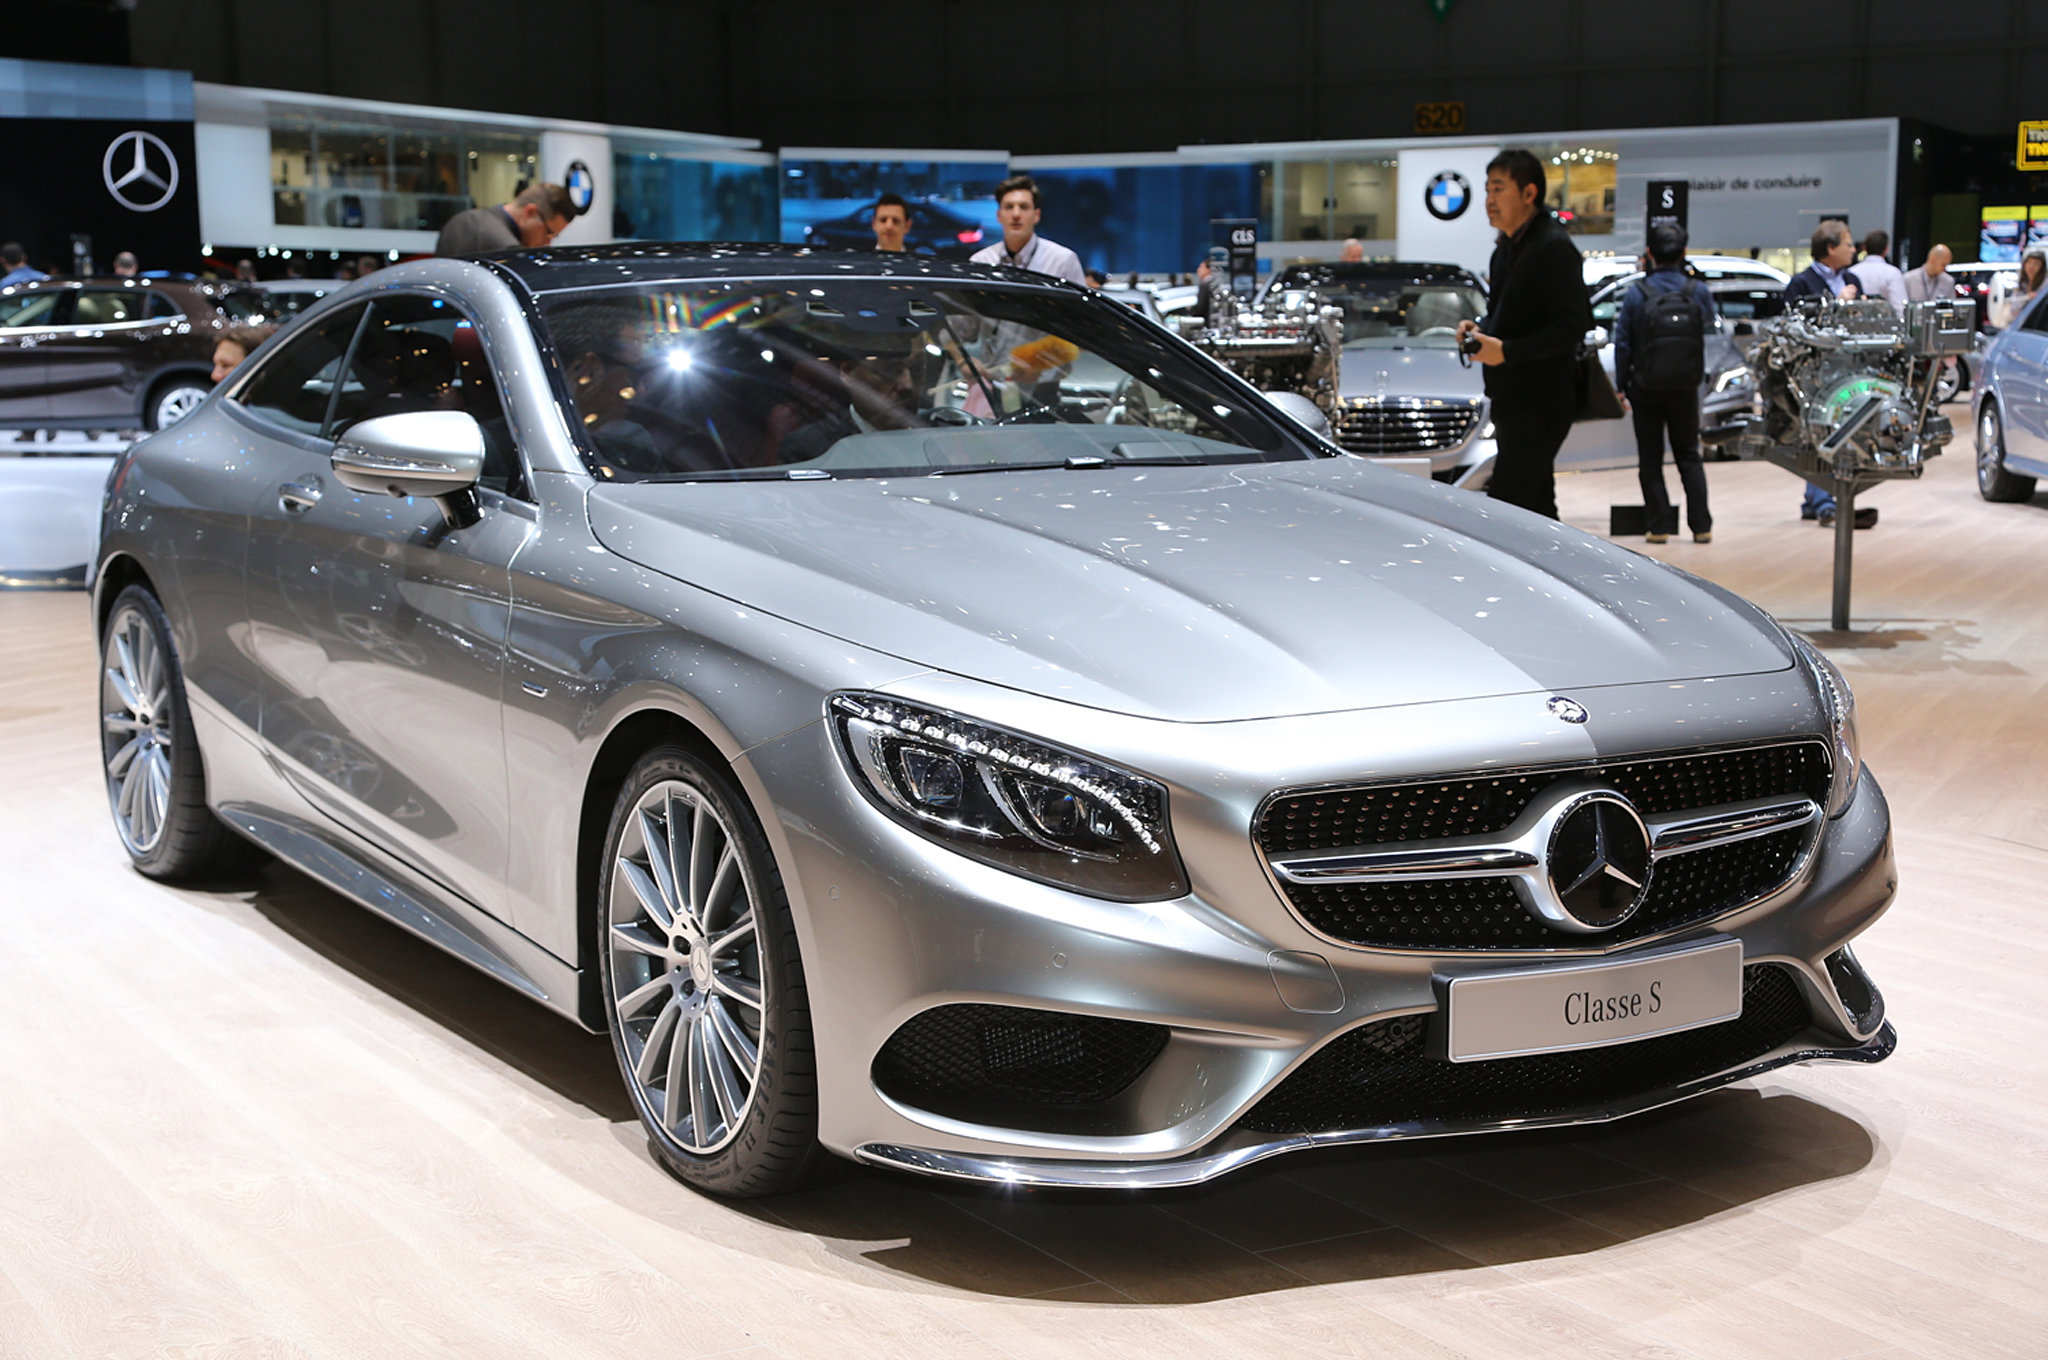 2015 Mercedes-Benz S-Class Coupe First Look - Motor Trend